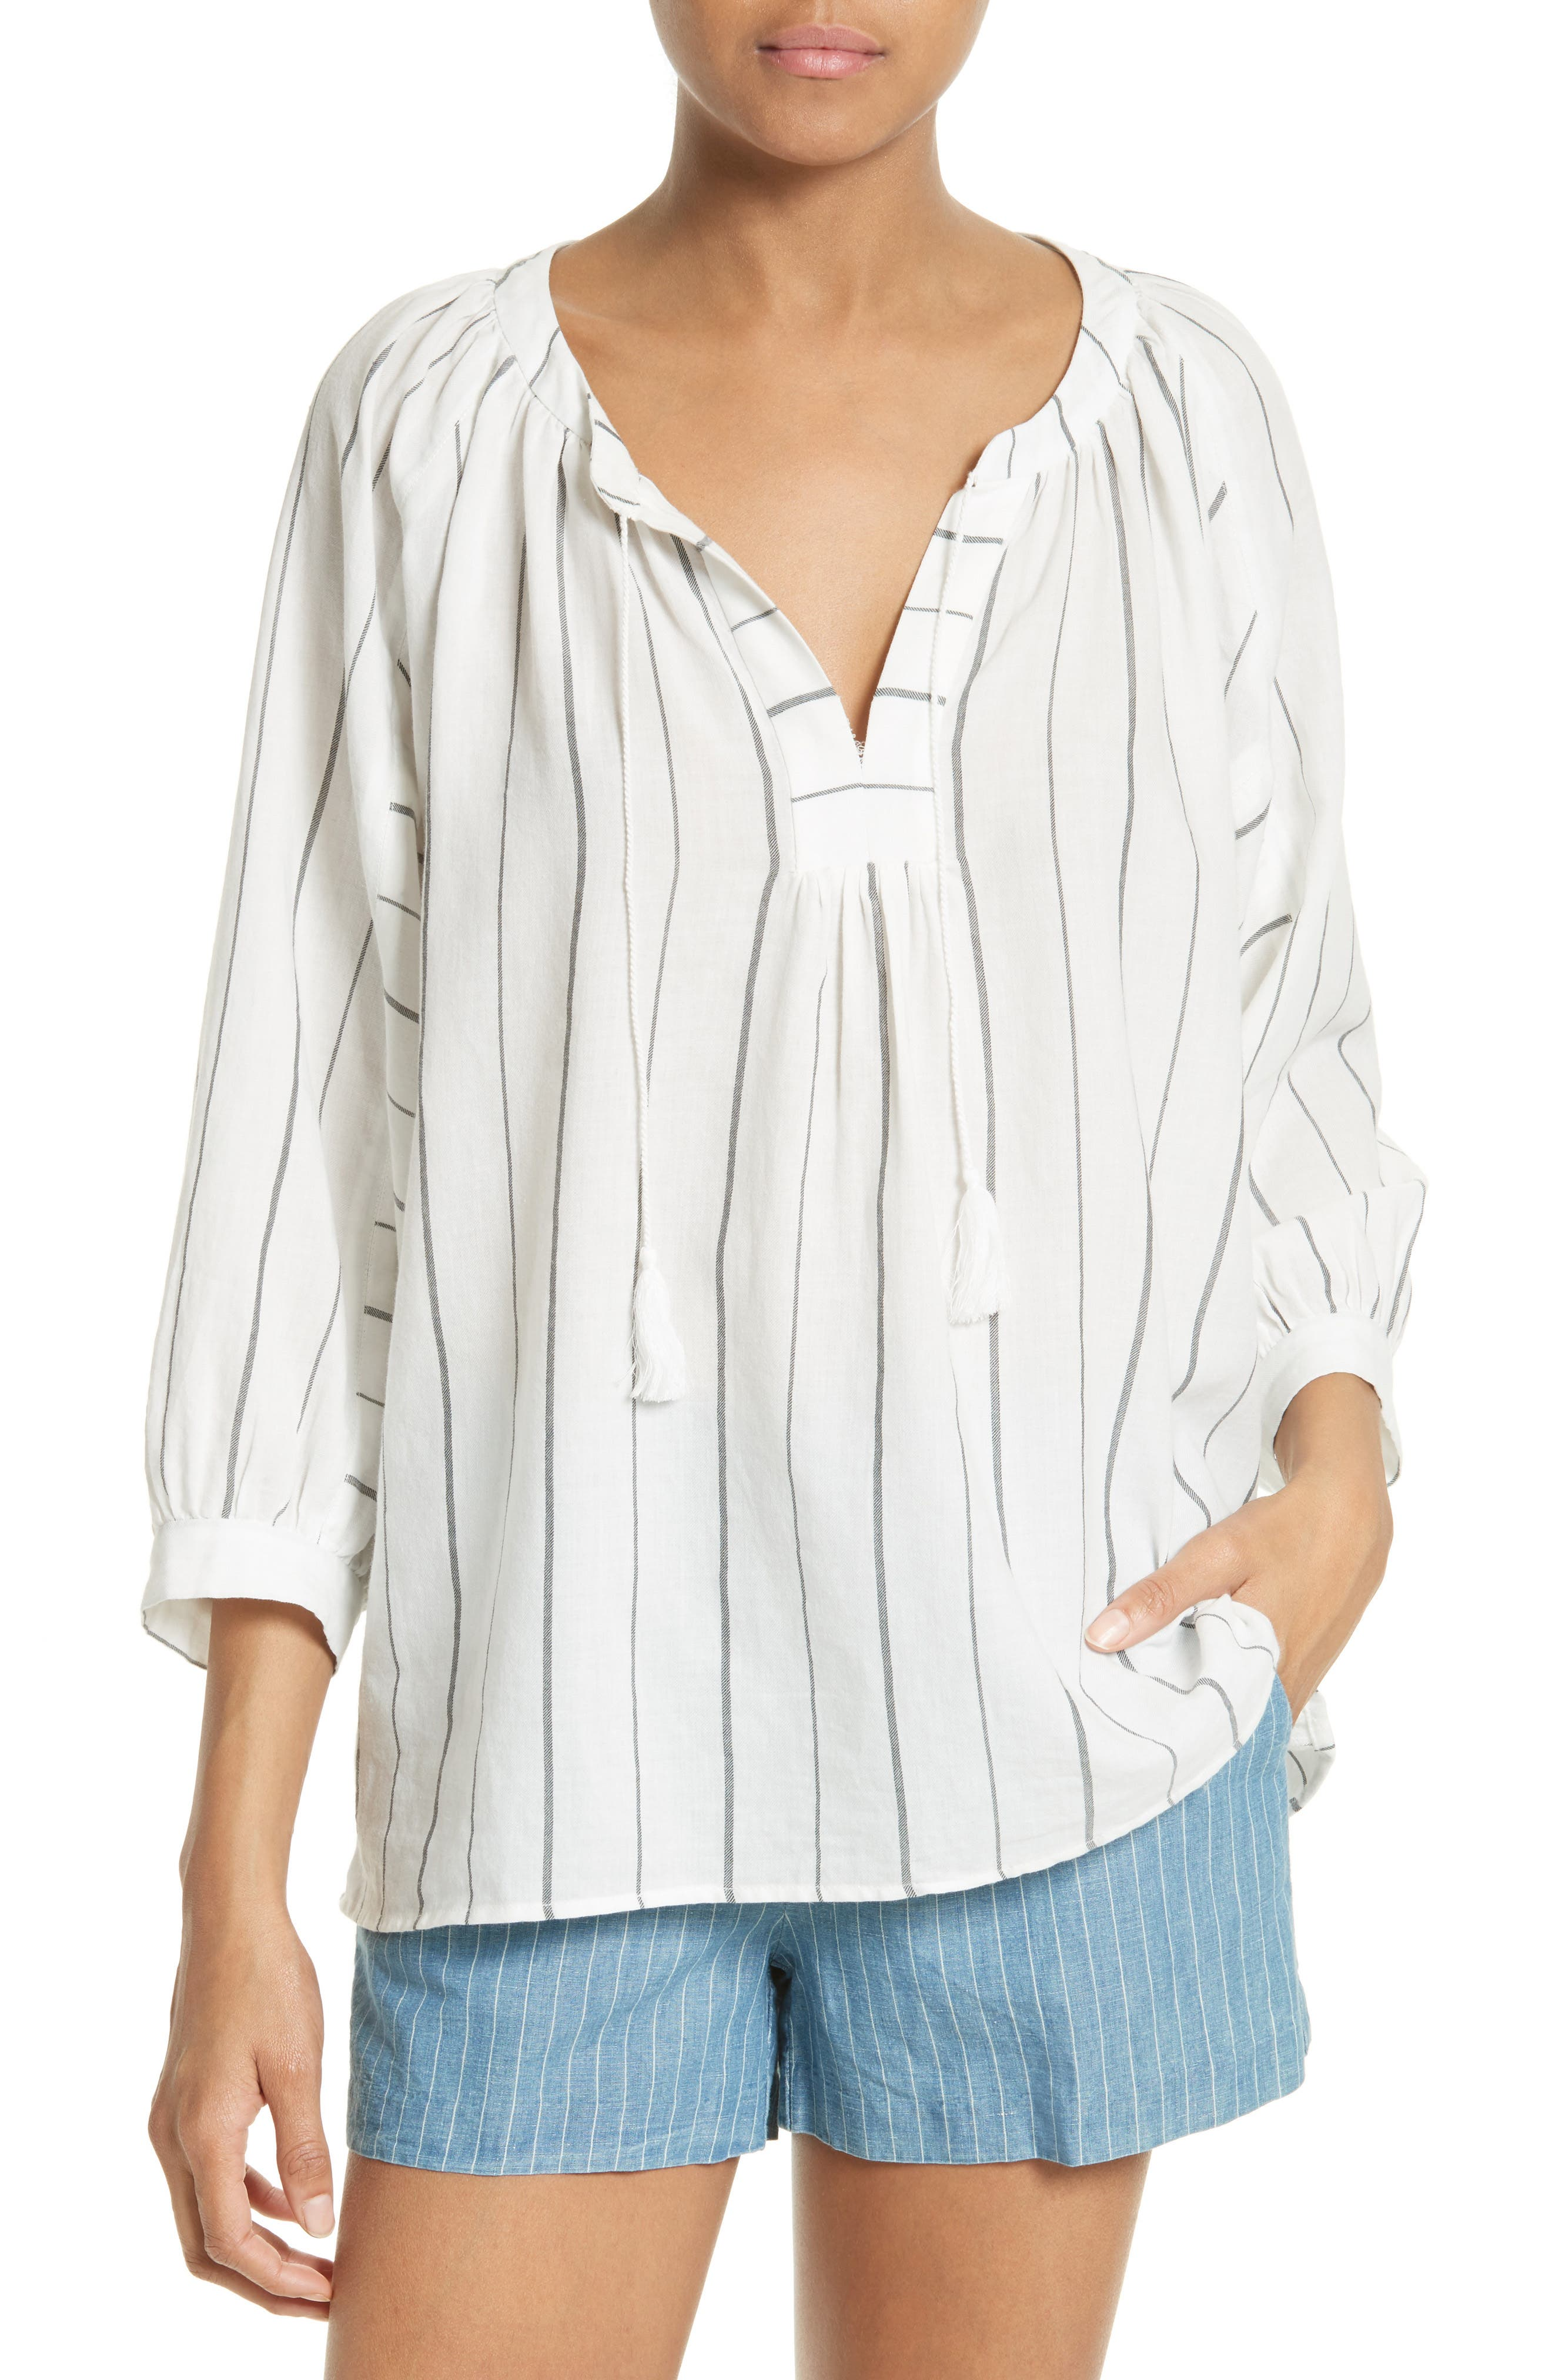 Joie Toluca B Stripe Top